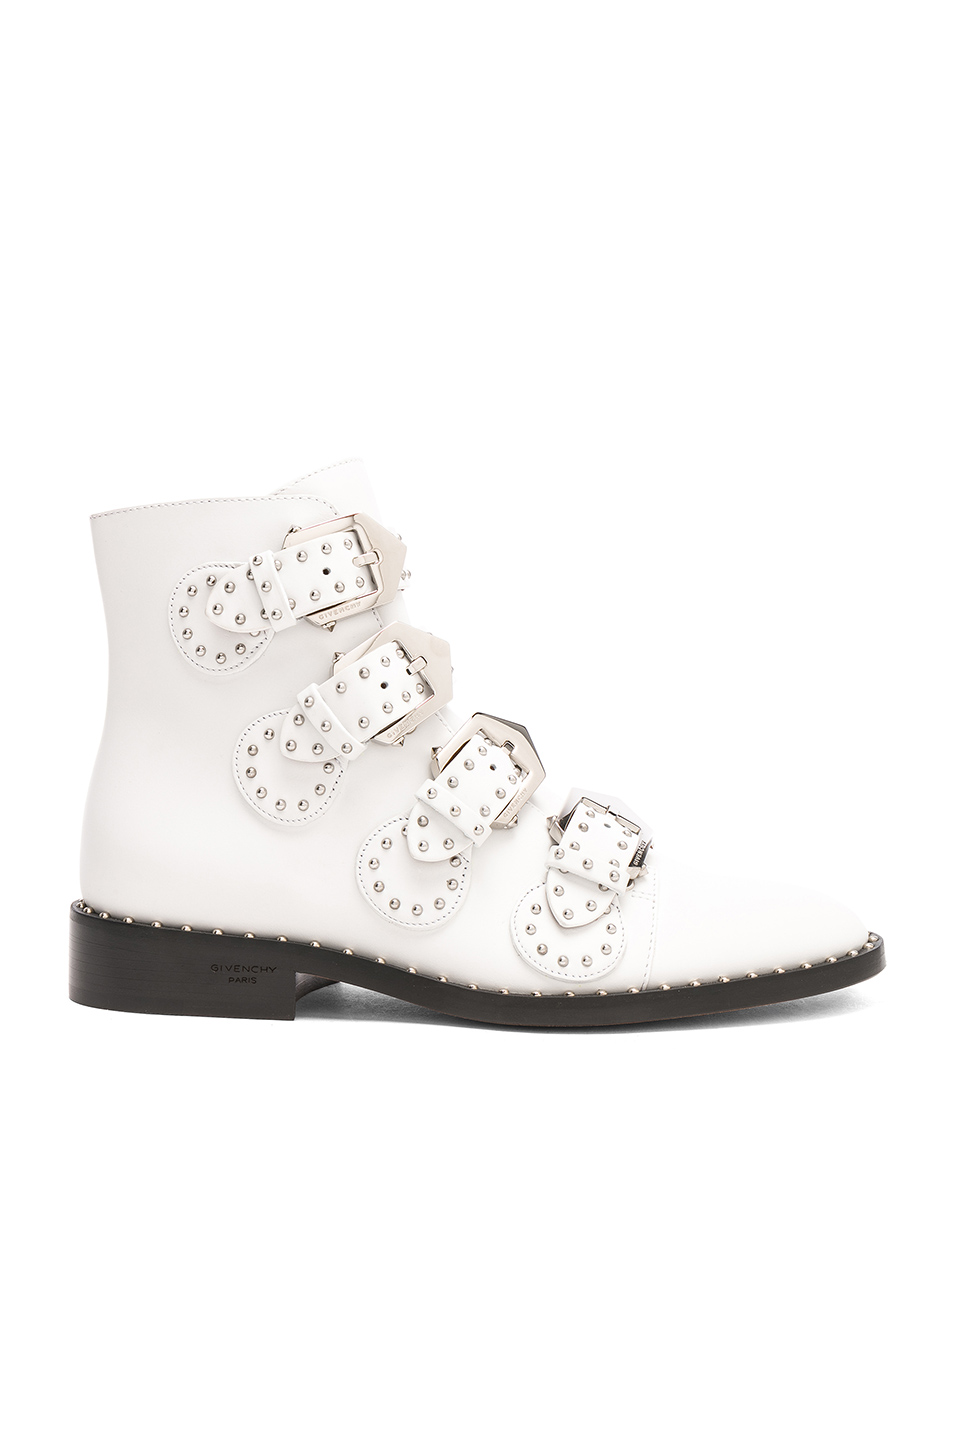 3213a29146b6b Jual Givenchy Leather Elegant Studded Ankle Boots - 100% Original ...